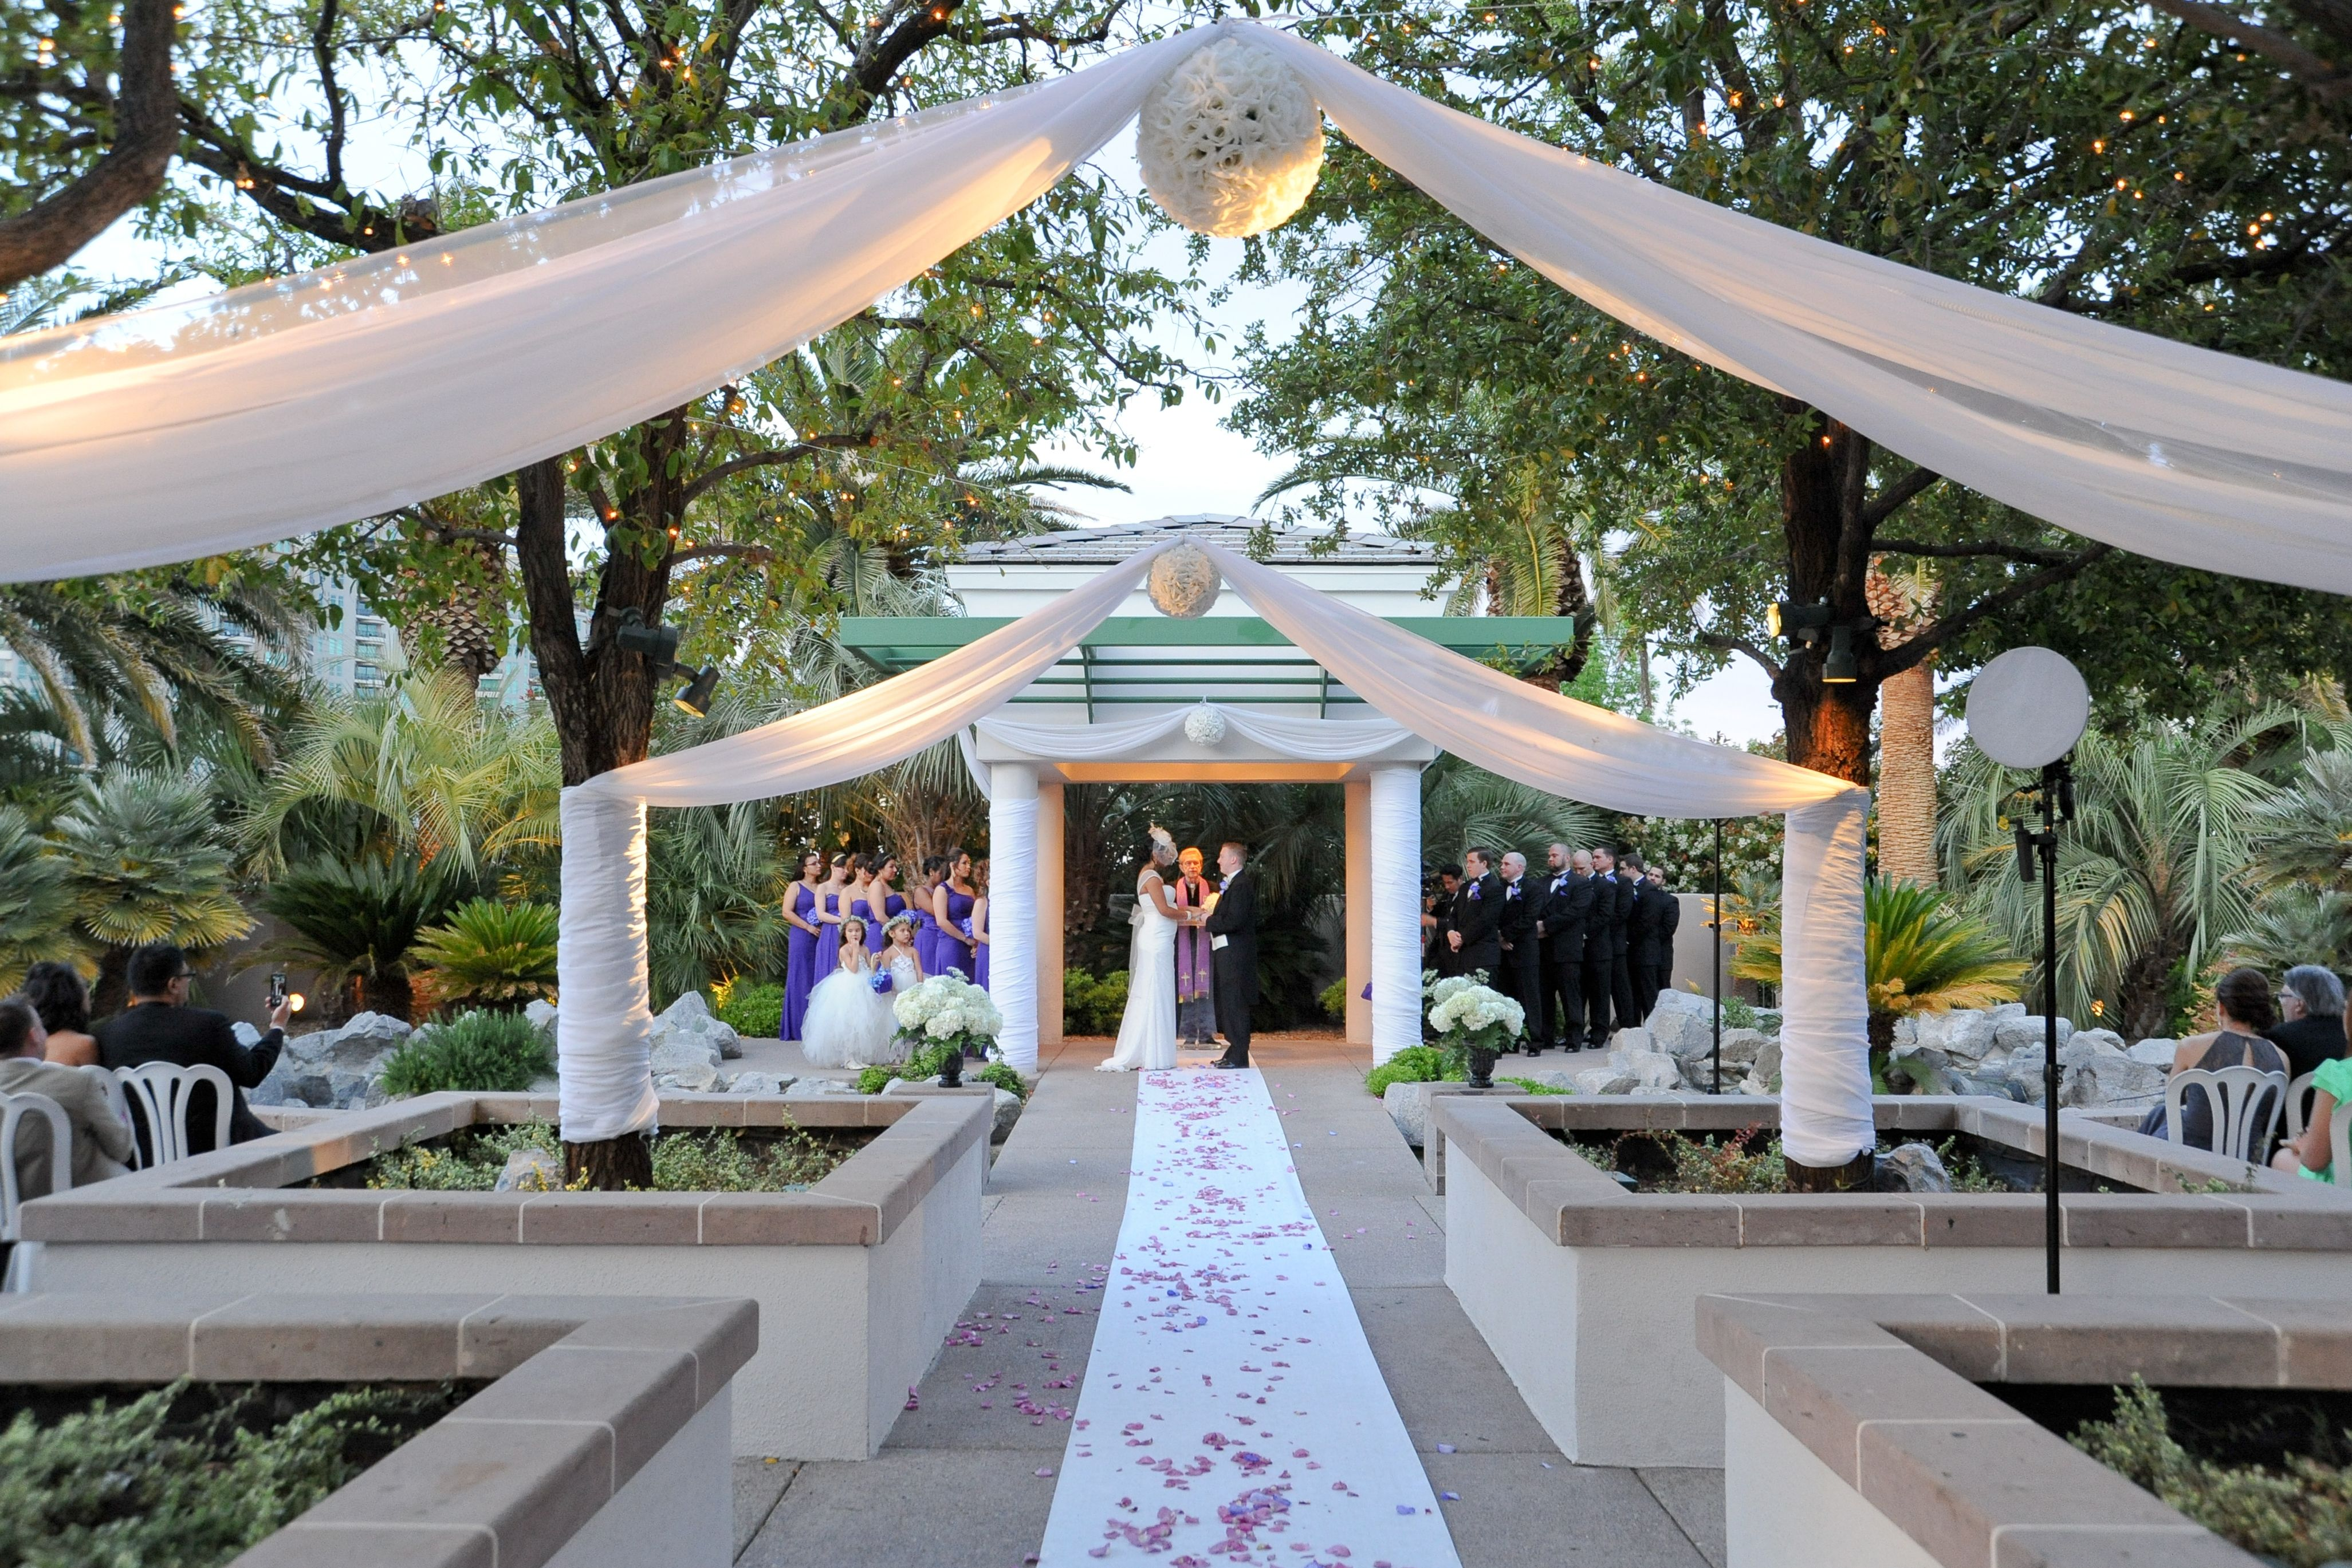 Emerald At Queensridge Perfect Outdoor Wedding Location By Cashman Brothers Fine Pho Wedding Locations Outdoor Las Vegas Wedding Locations Las Vegas Weddings